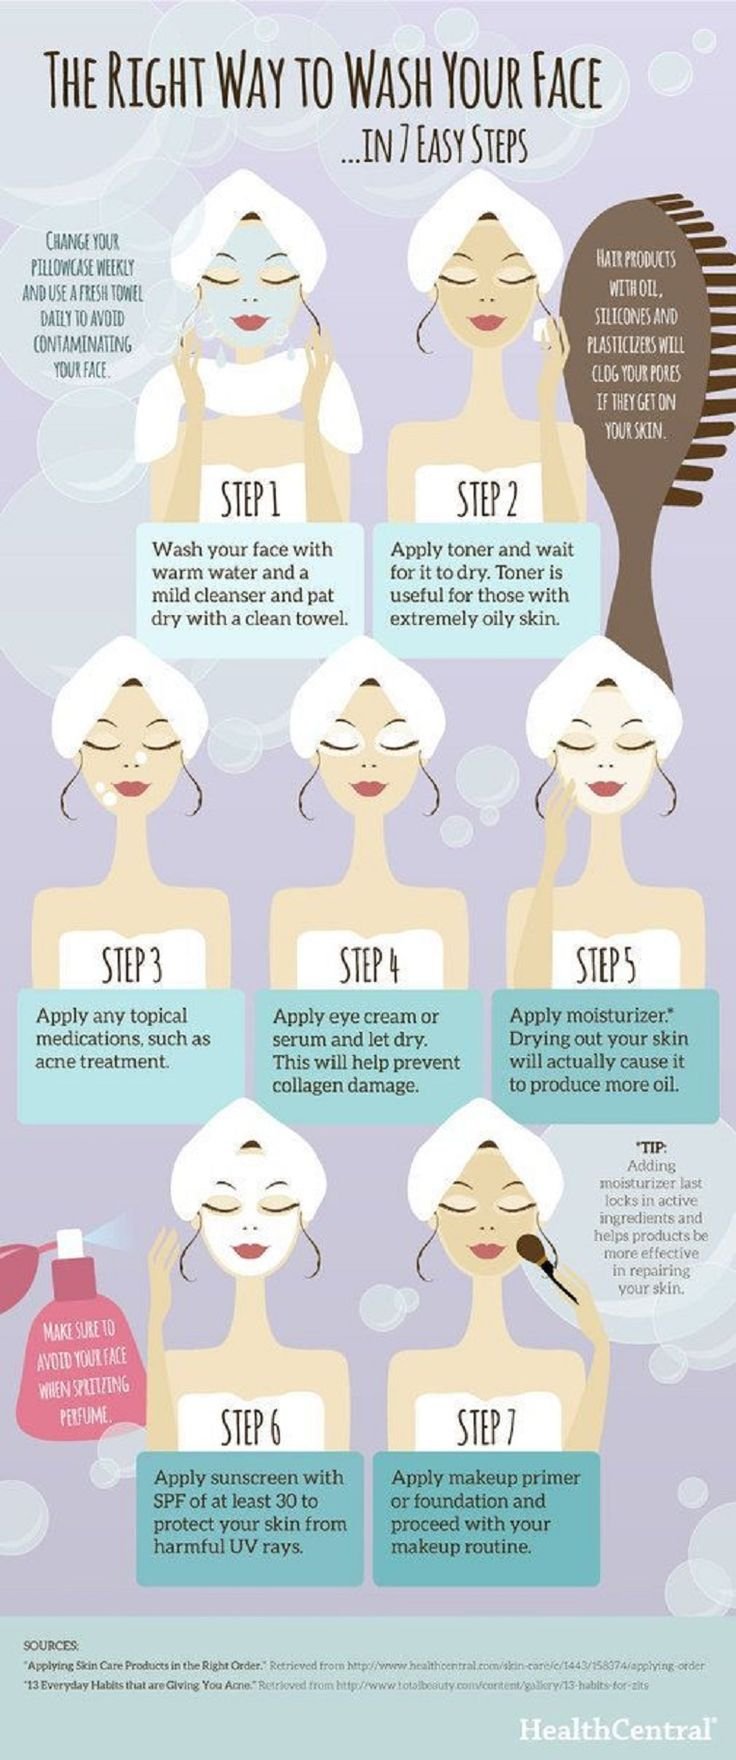 Keep Your #Skincare Clean #makeuptips  #clairesoltz For more make up tips or copies of our latest catalogues please visit my facebook page FM Perfume Boutique or website www.myfmbusiness.com/perfumeboutique